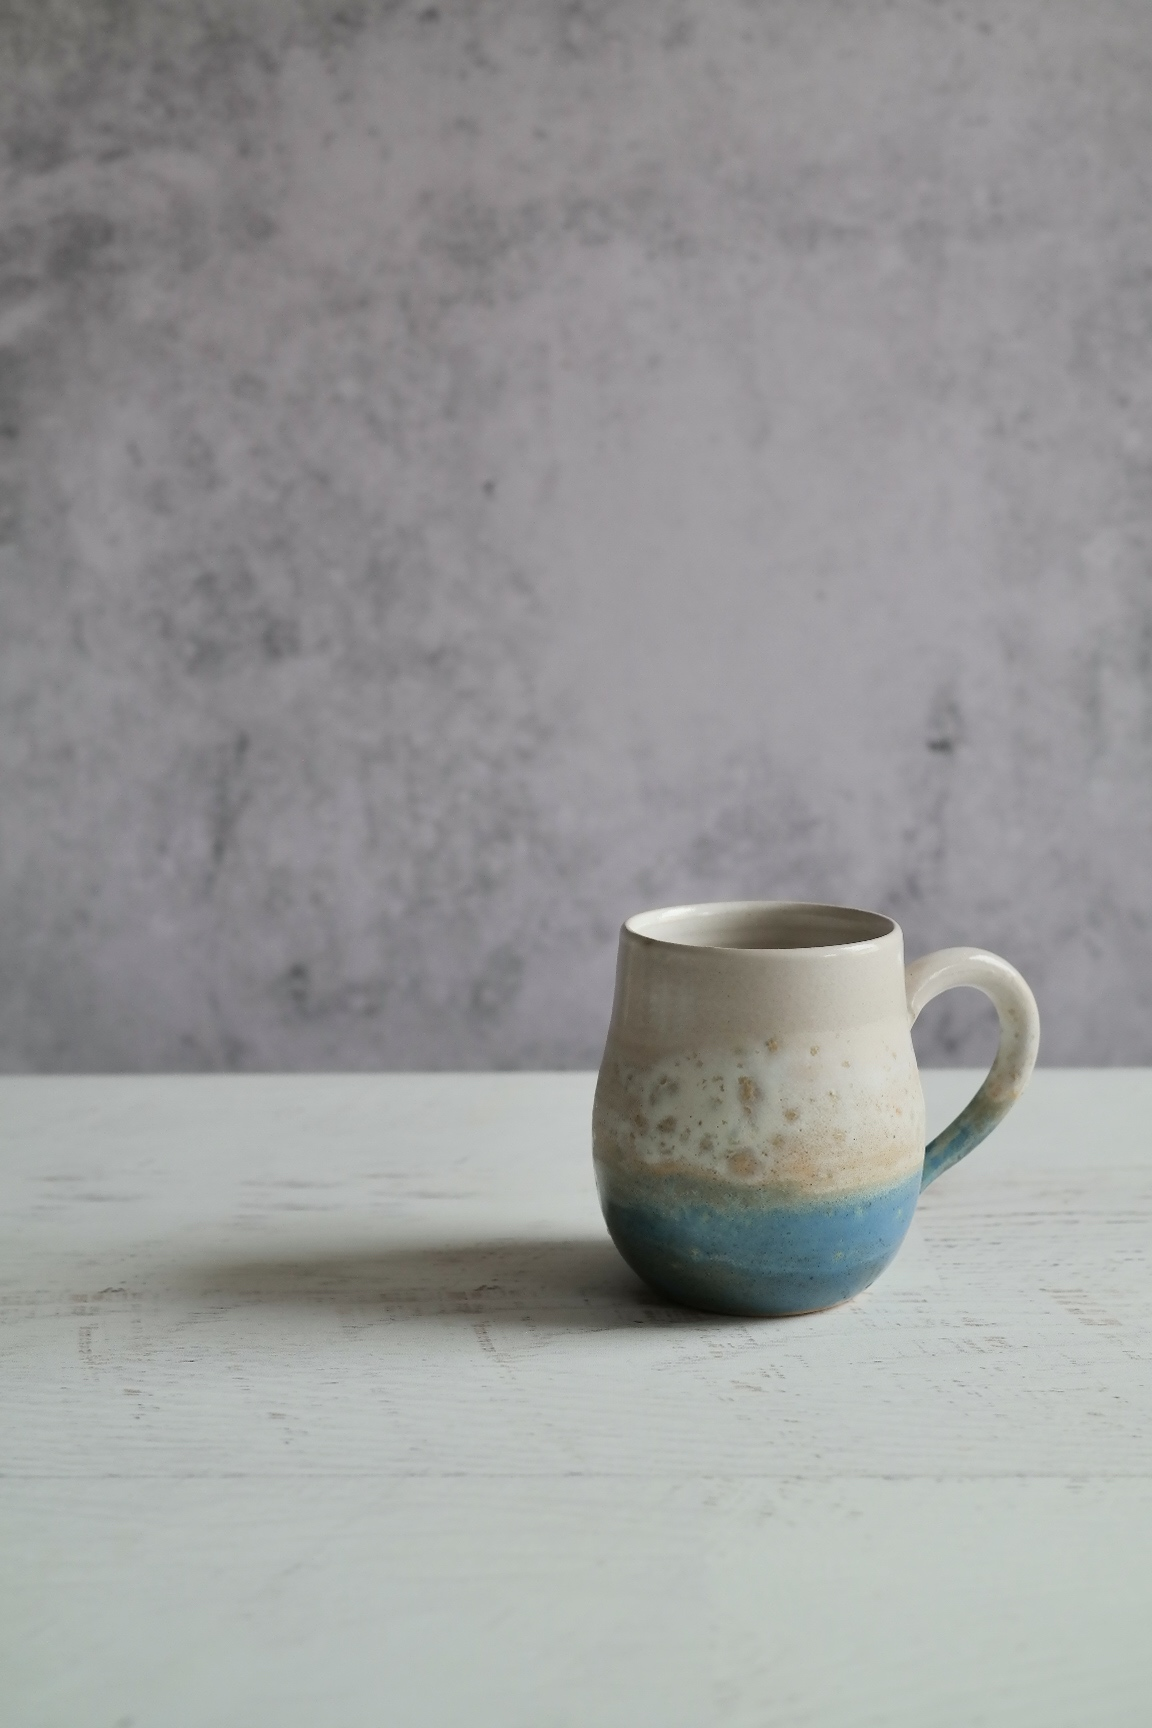 'At the Beach' stoneware mug